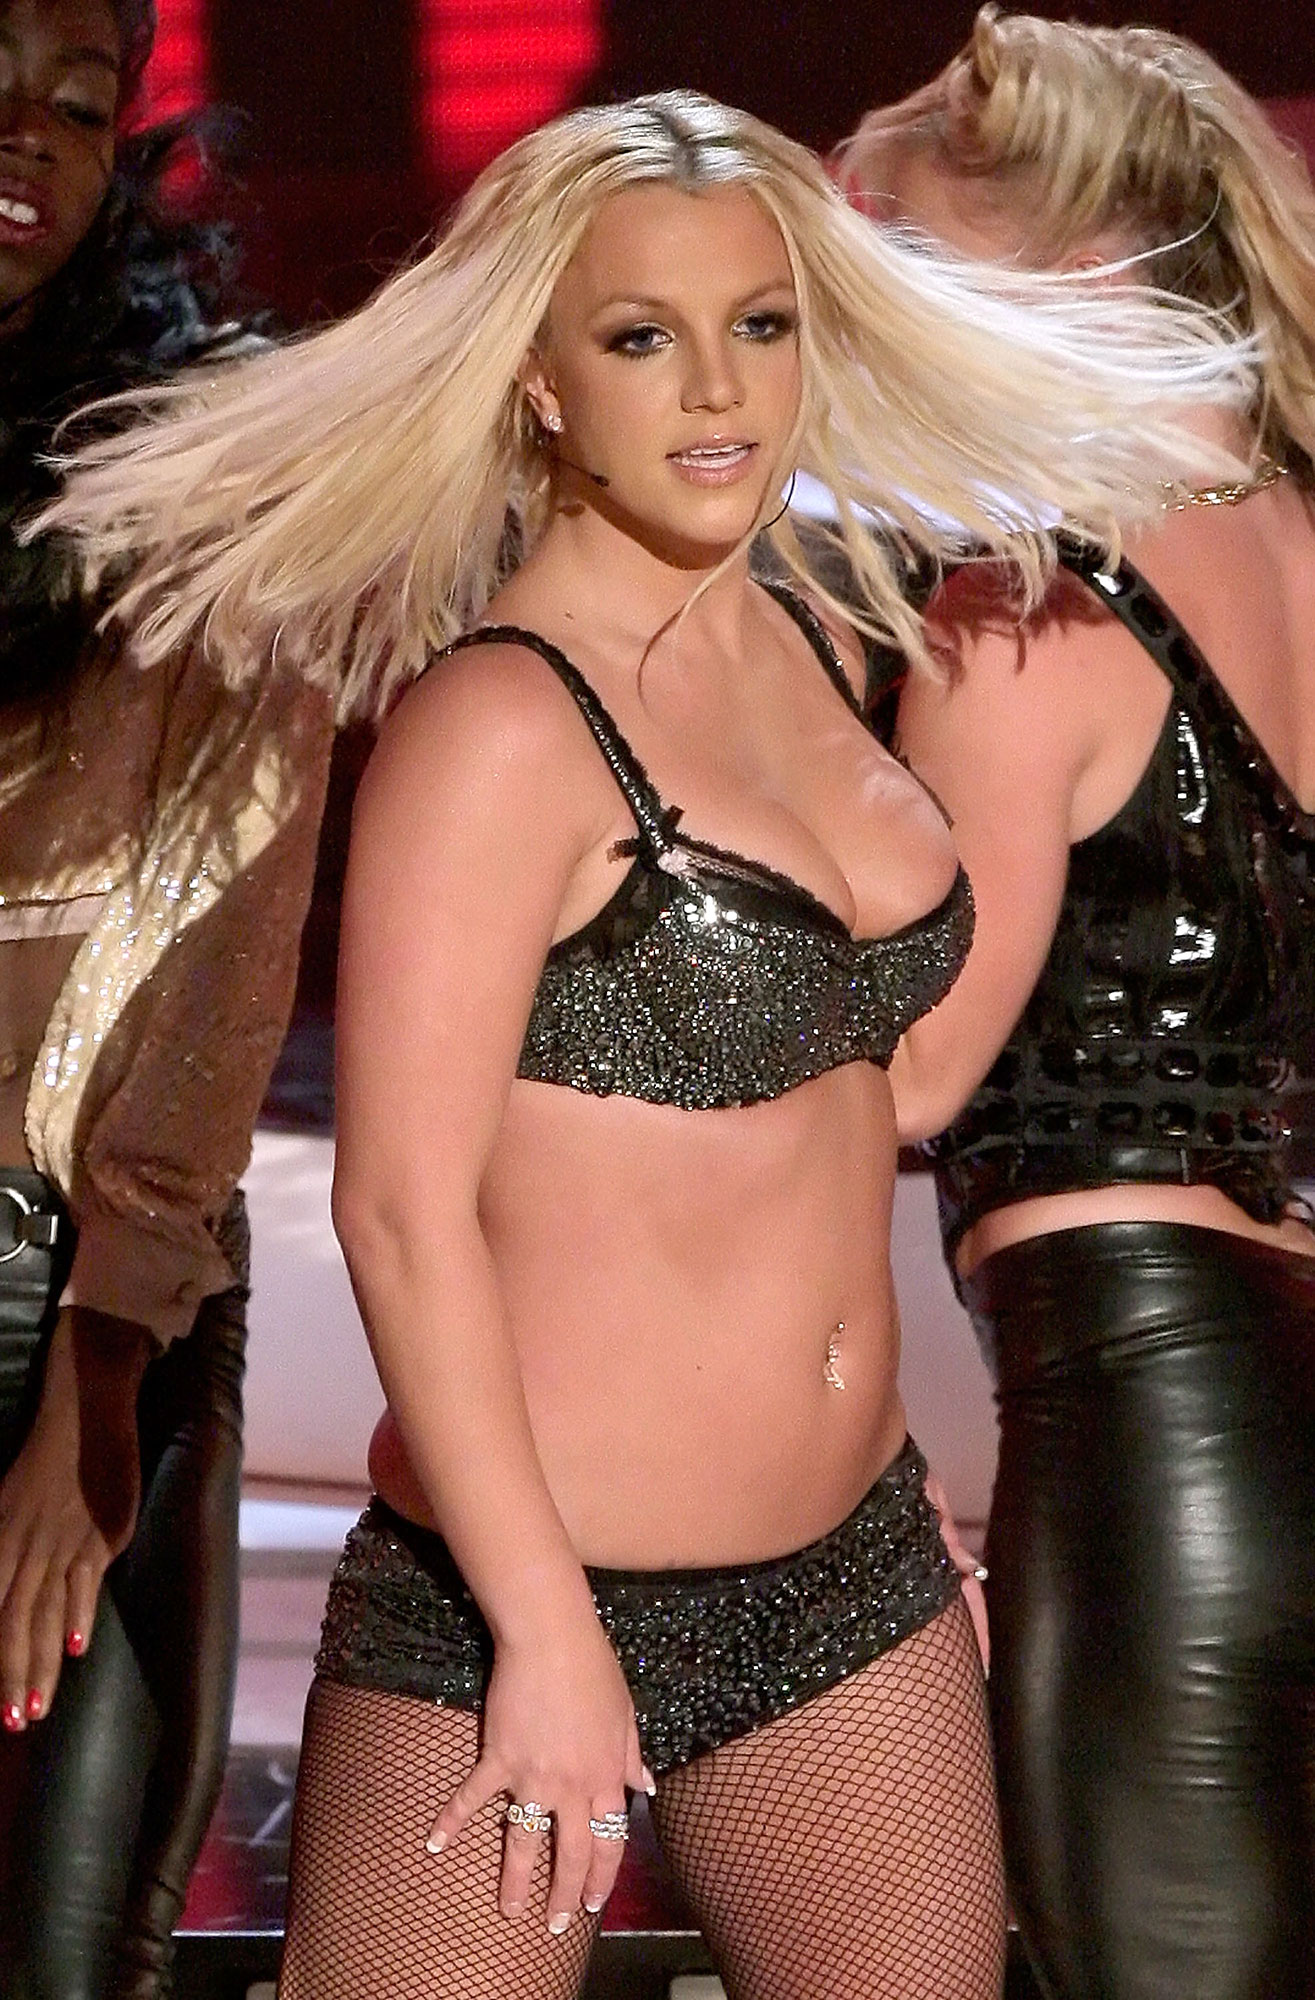 """Britney Spears' Ups and Downs gallery - After months of setbacks, Spears was criticized for her attempt at a comeback while performing """"Gimme More"""" at the 2007 VMAs."""